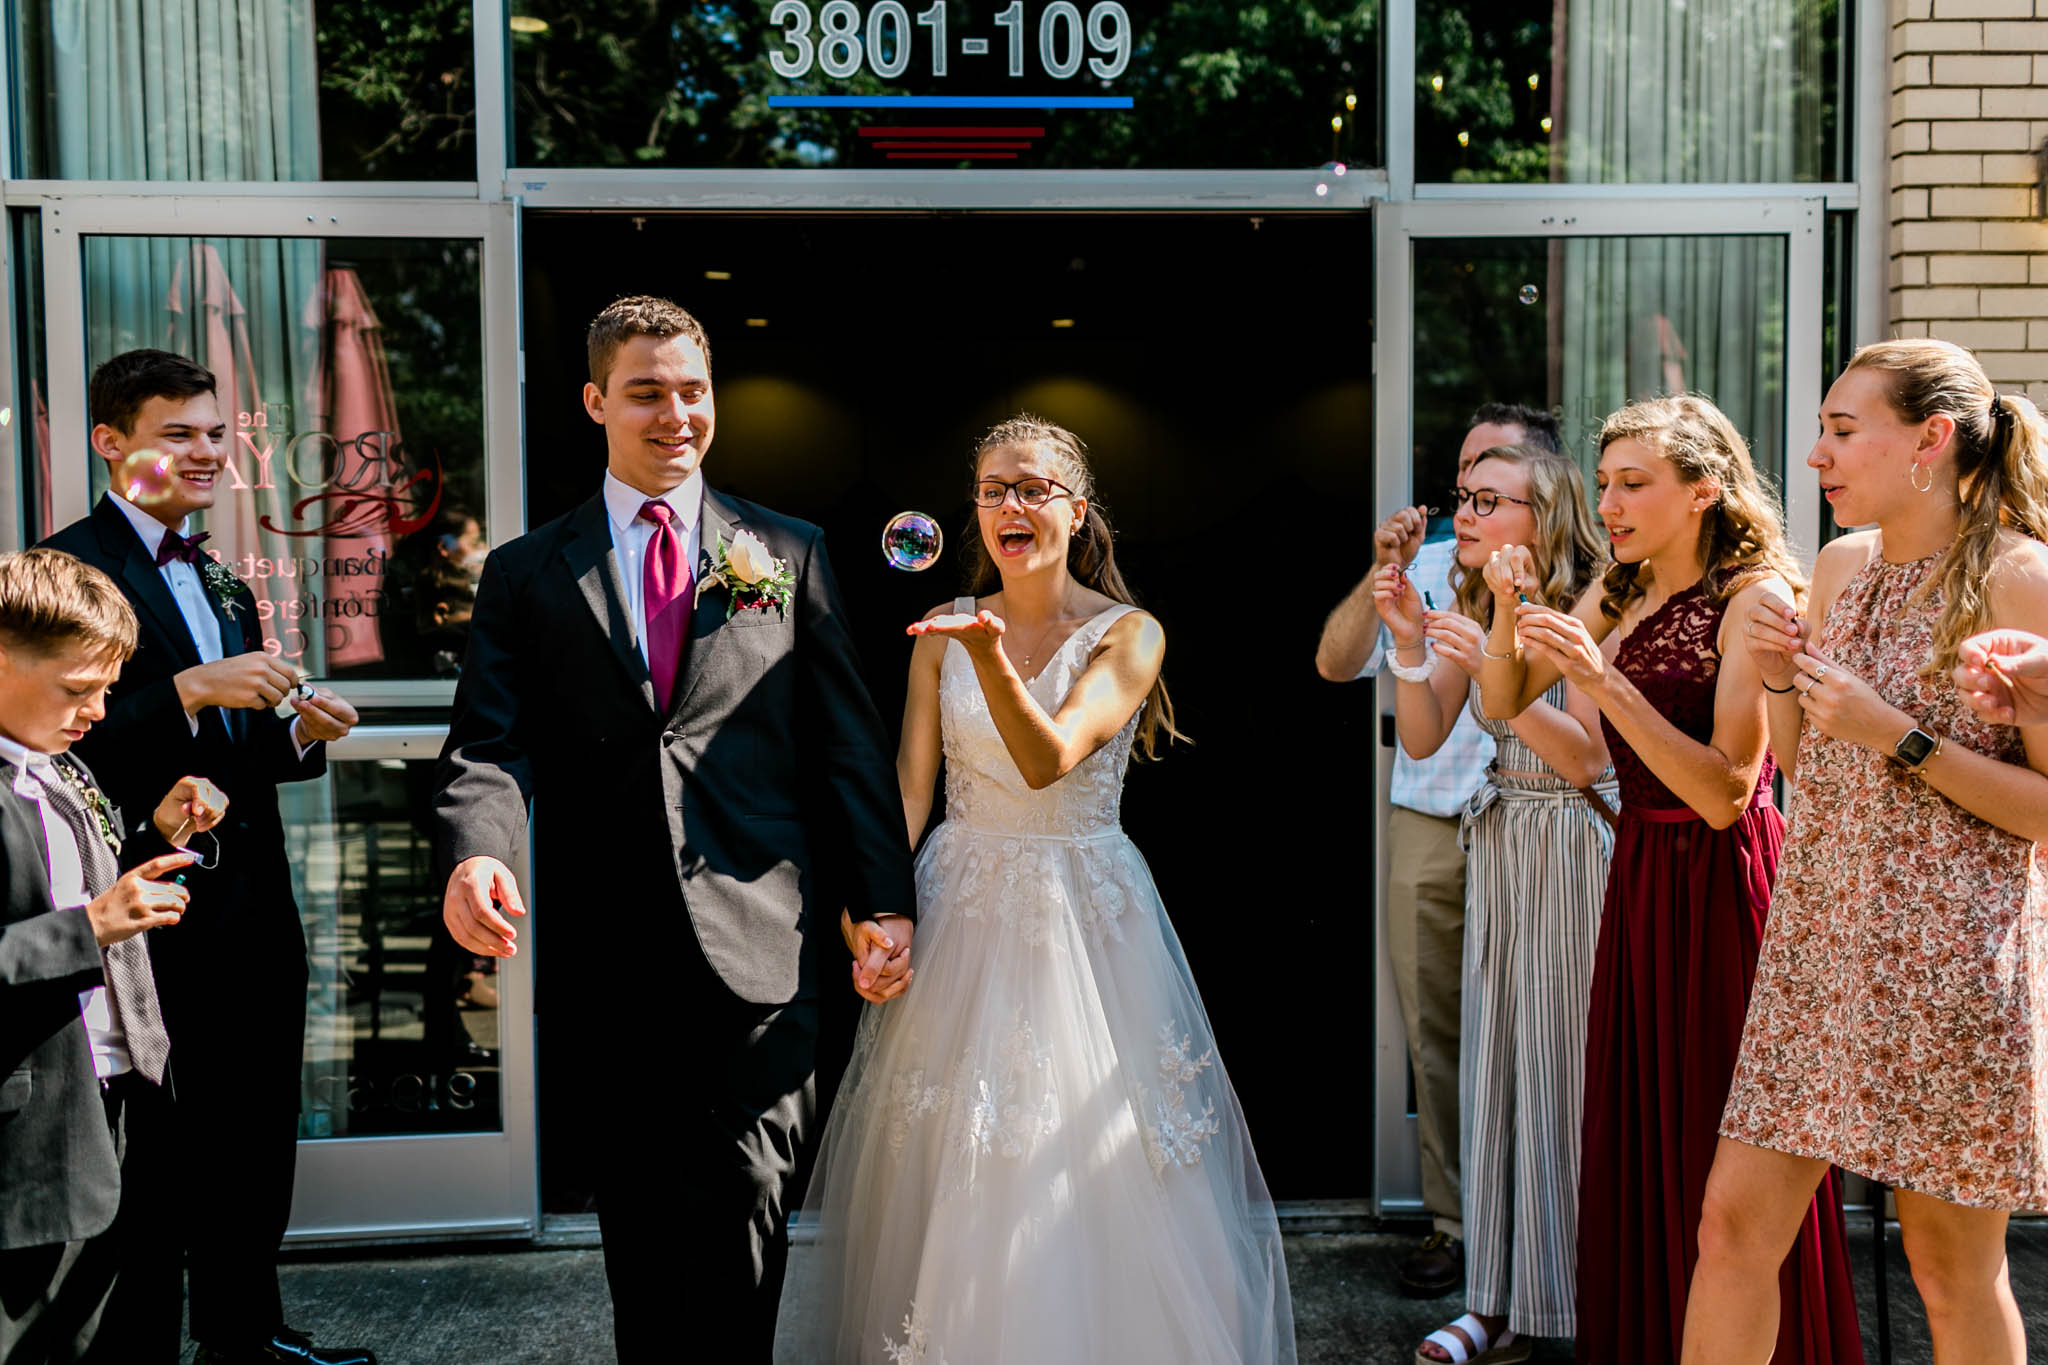 Bride holding bubble | Royal Banquet Conference Center | Raleigh Wedding Photographer | By G. Lin Photography